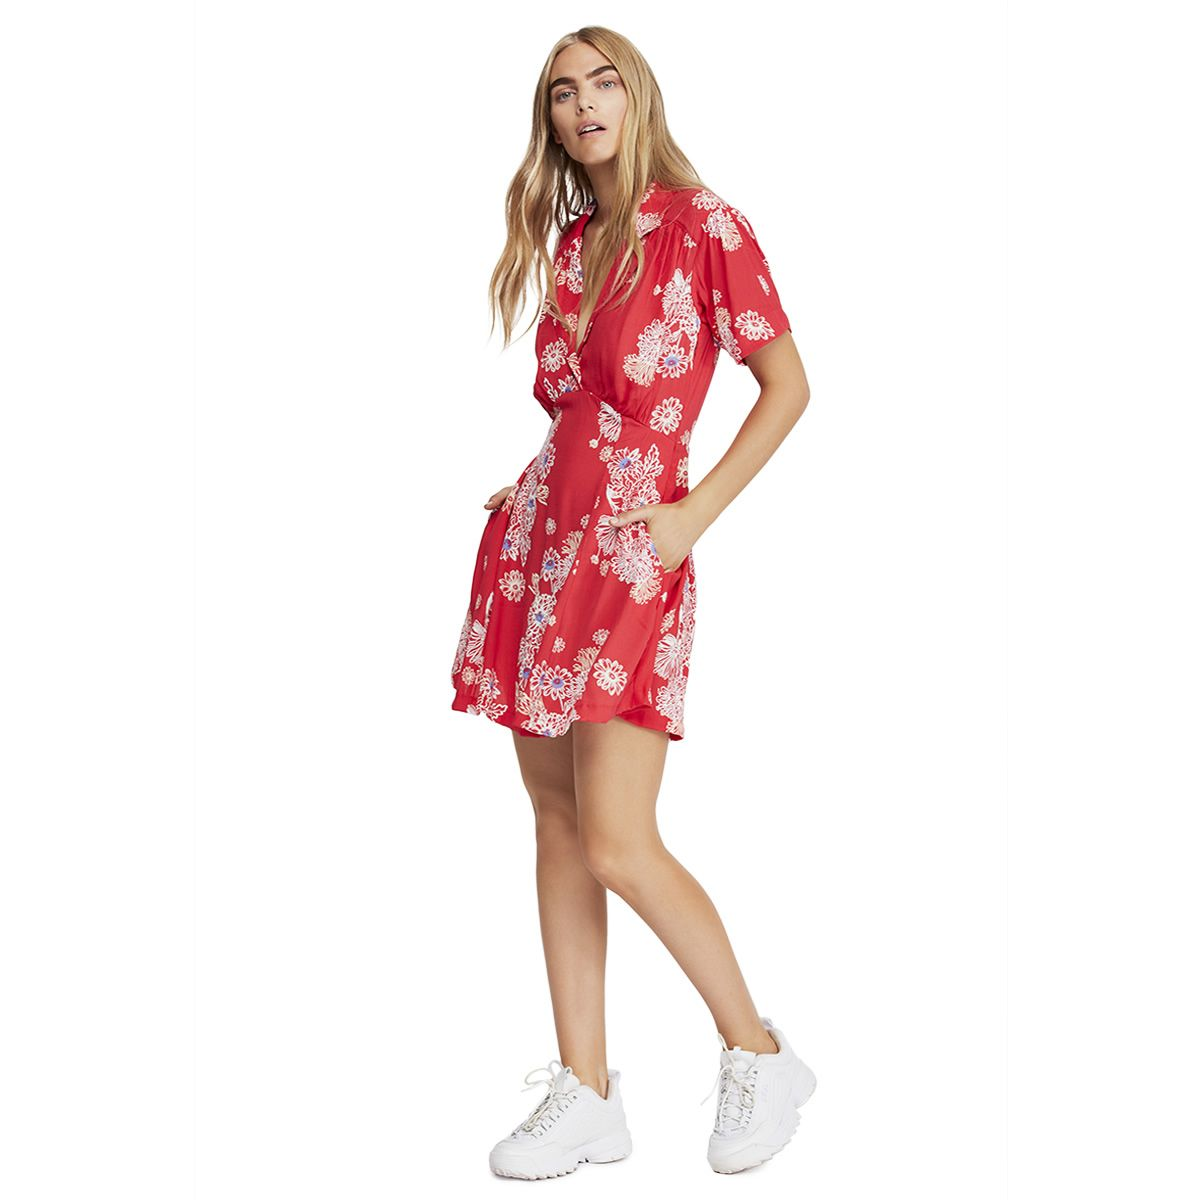 6e1512777cc836 Free People Dresses for Women - Macy's